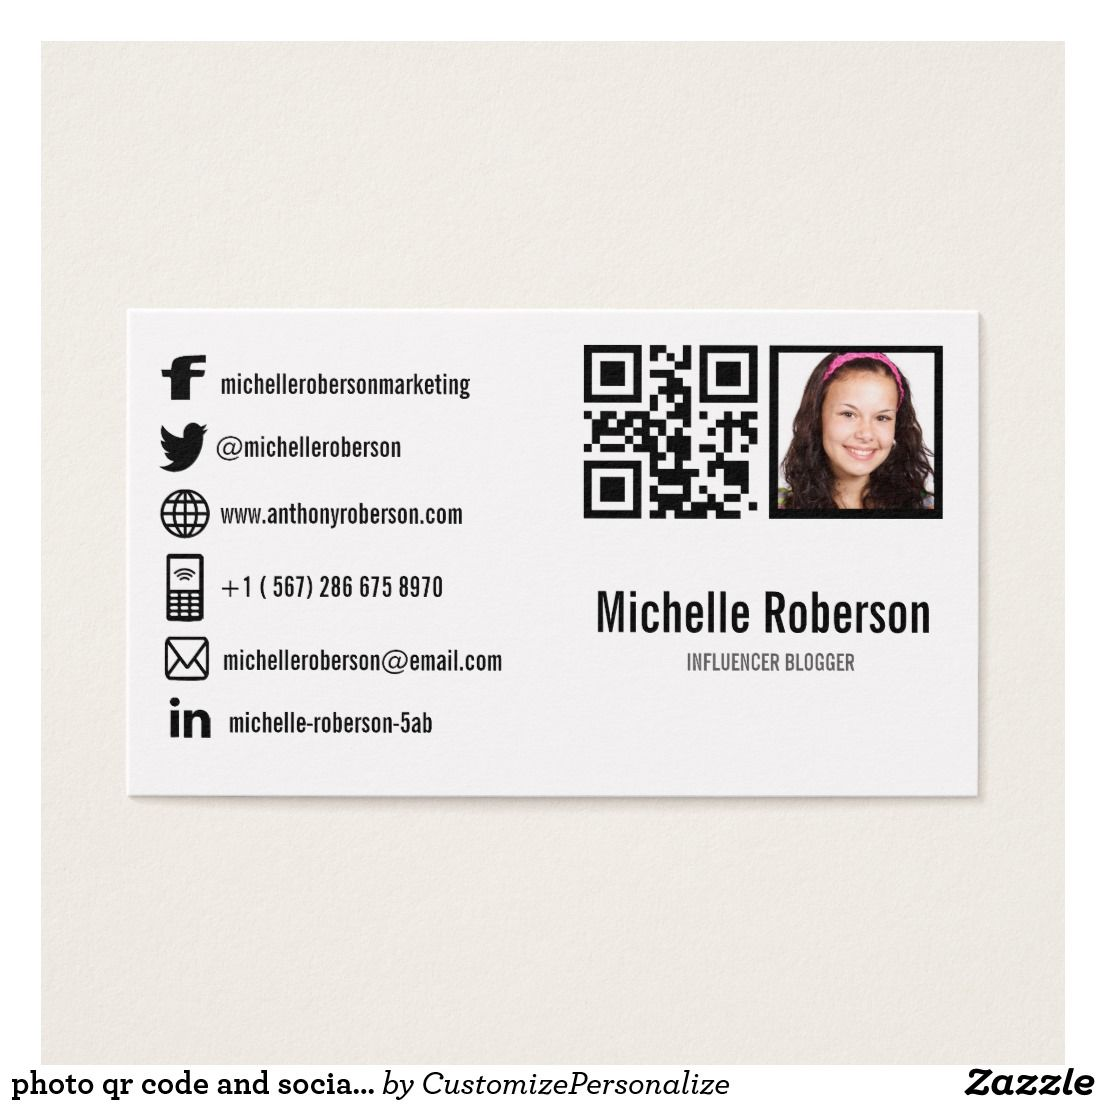 Photo qr code and social media icons business card pinterest photo qr code and social media icons business card colourmoves